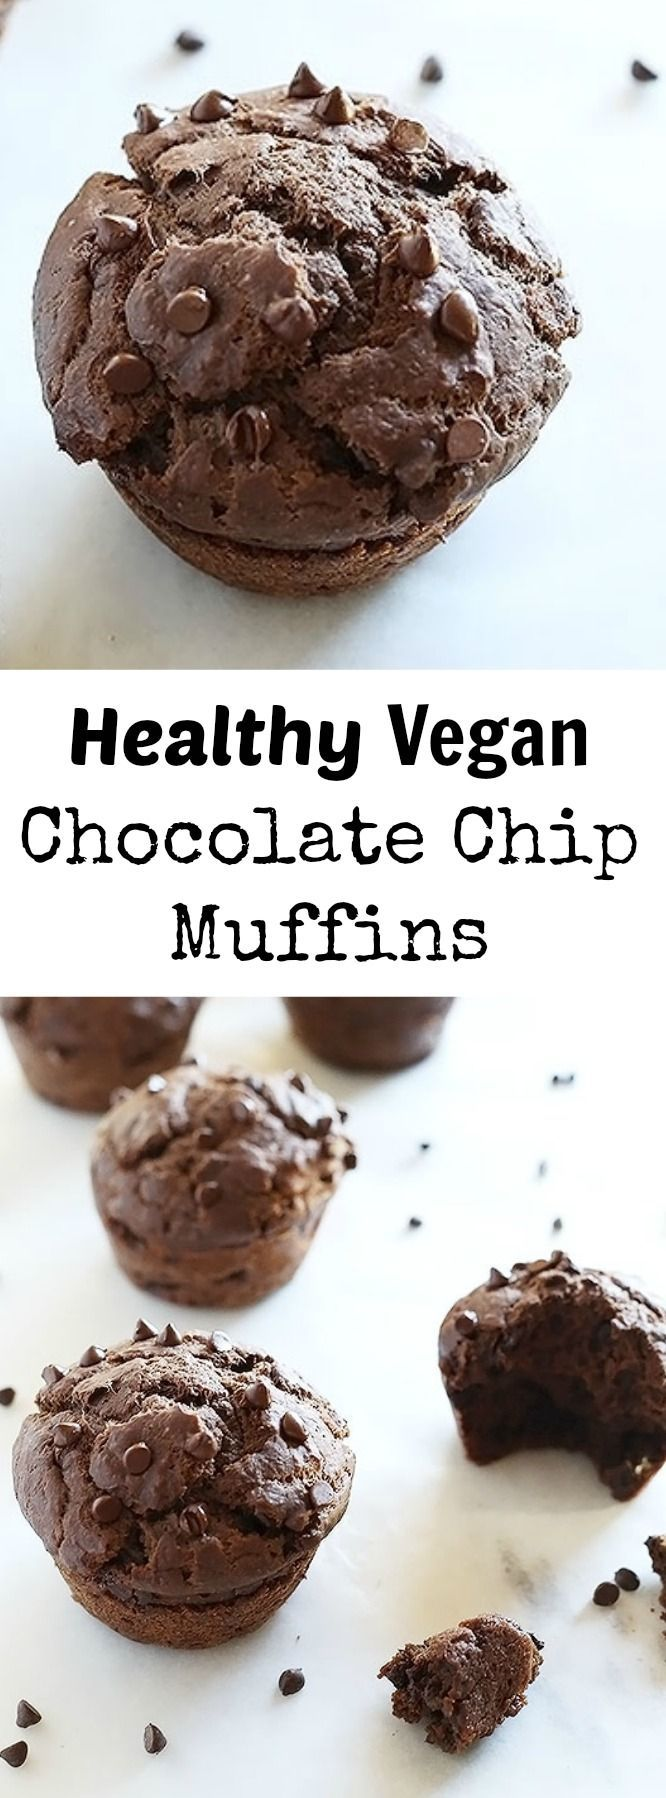 Healthy Vegan Chocolate Chip Muffins is part of Vegan dessert Healthy - These Healthy Vegan Chocolate Chip Muffins are sweetened with maple syrup and chocolate chips, super easy to make and great for breakfast, dessert or just snacking! Vegan